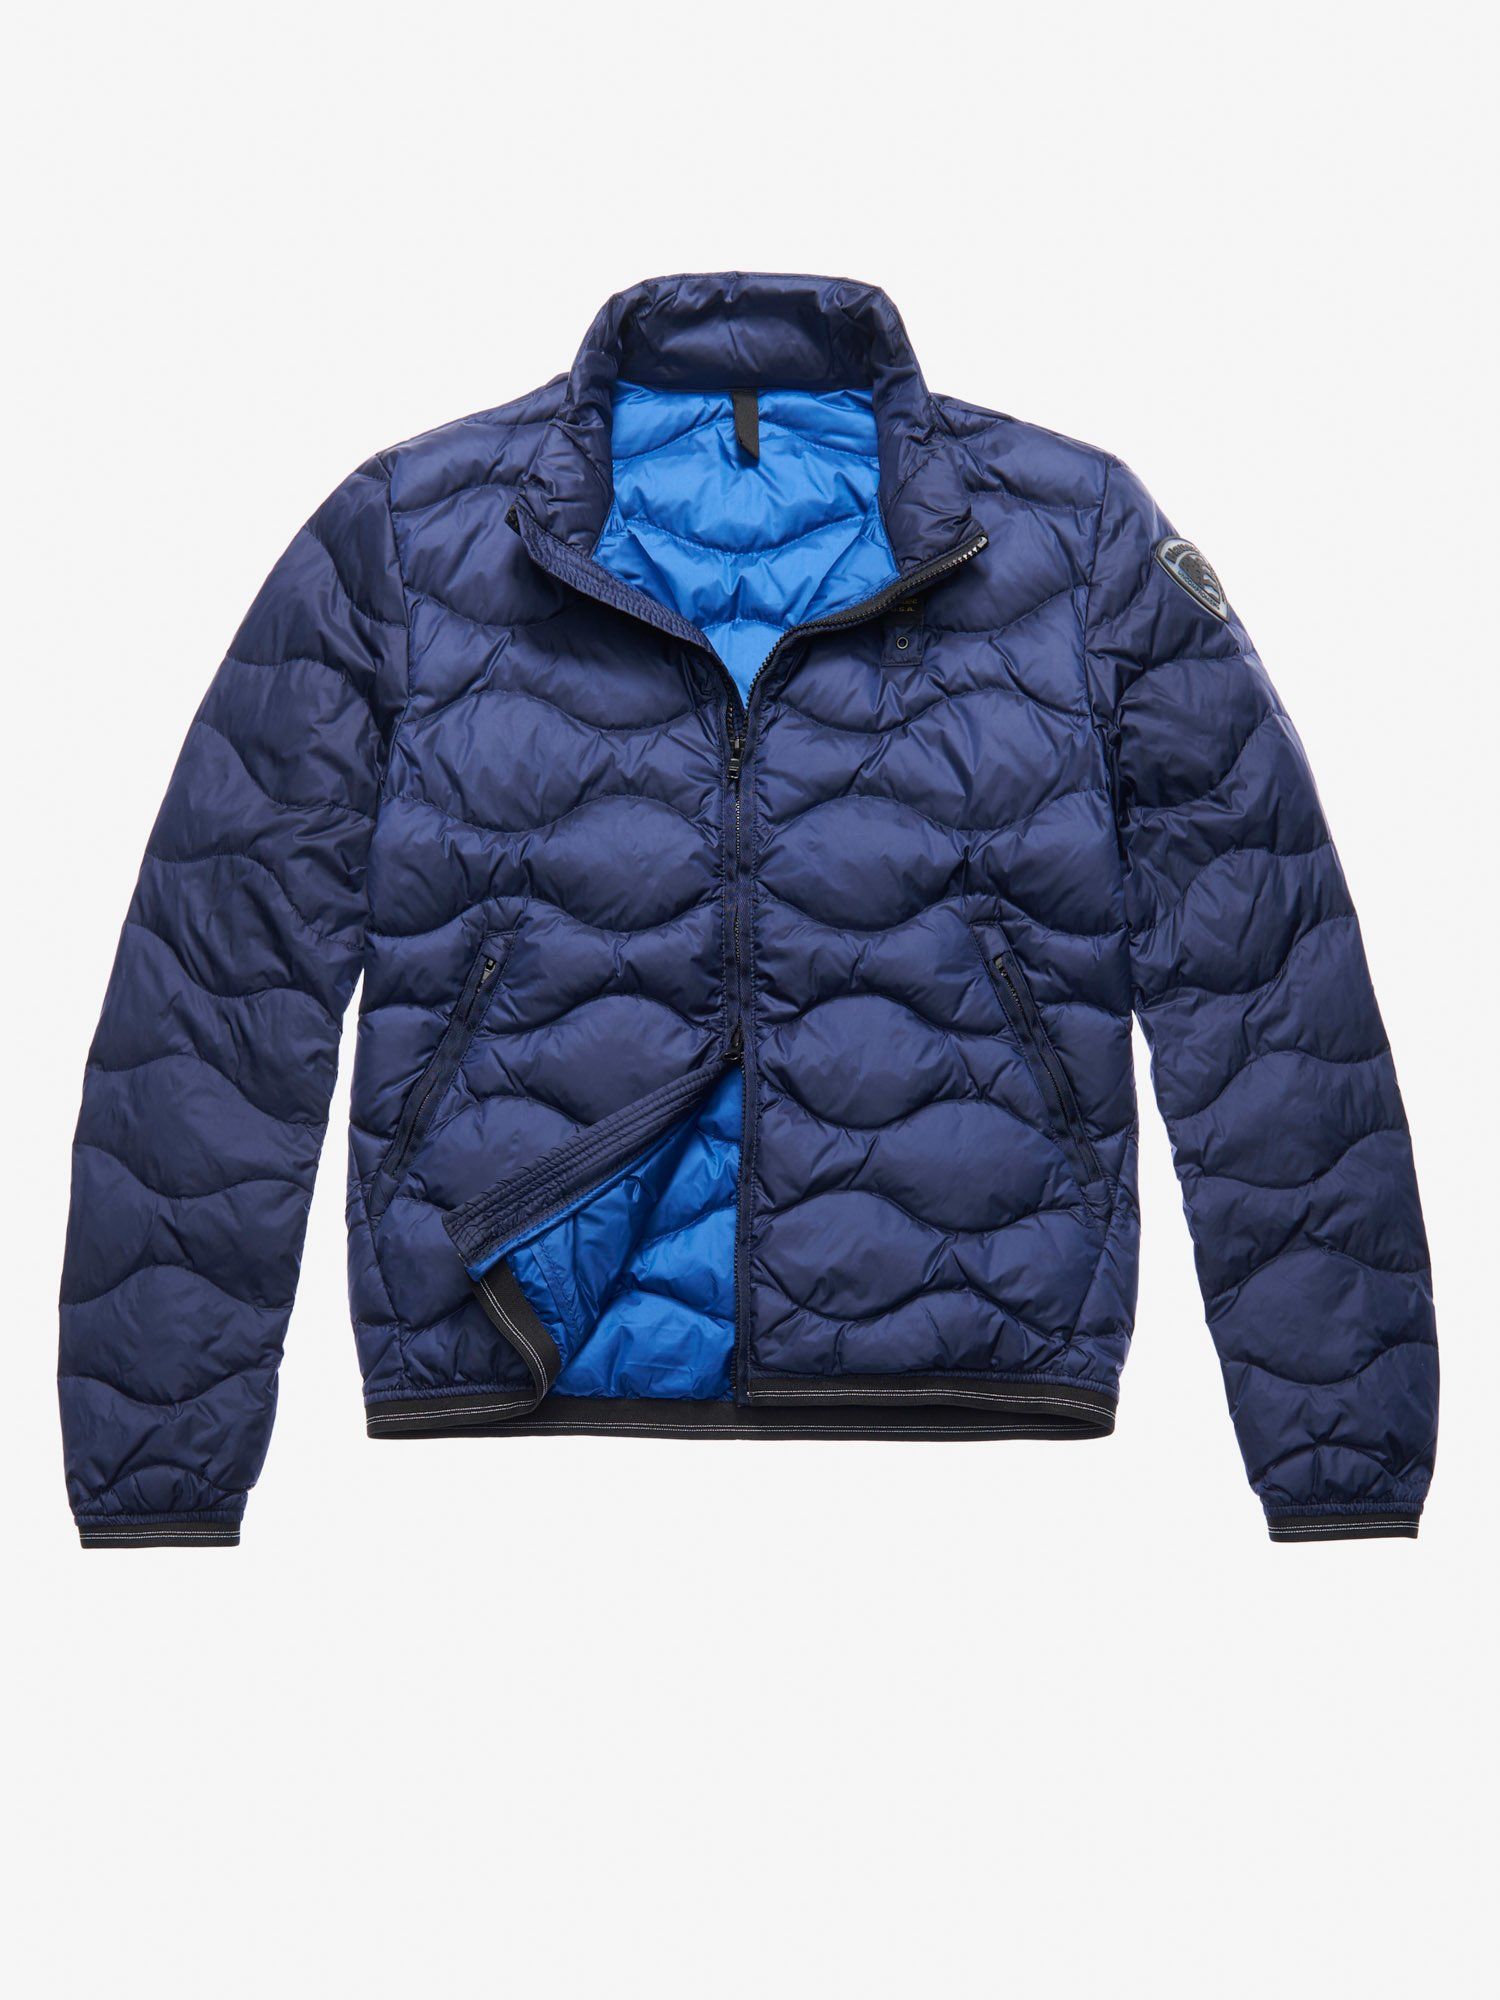 0ef5ba67d24cb Blauer - HILL WAVE-QUILTED DOWN JACKET - Blue Inside Blu Oltremare - 1 ...